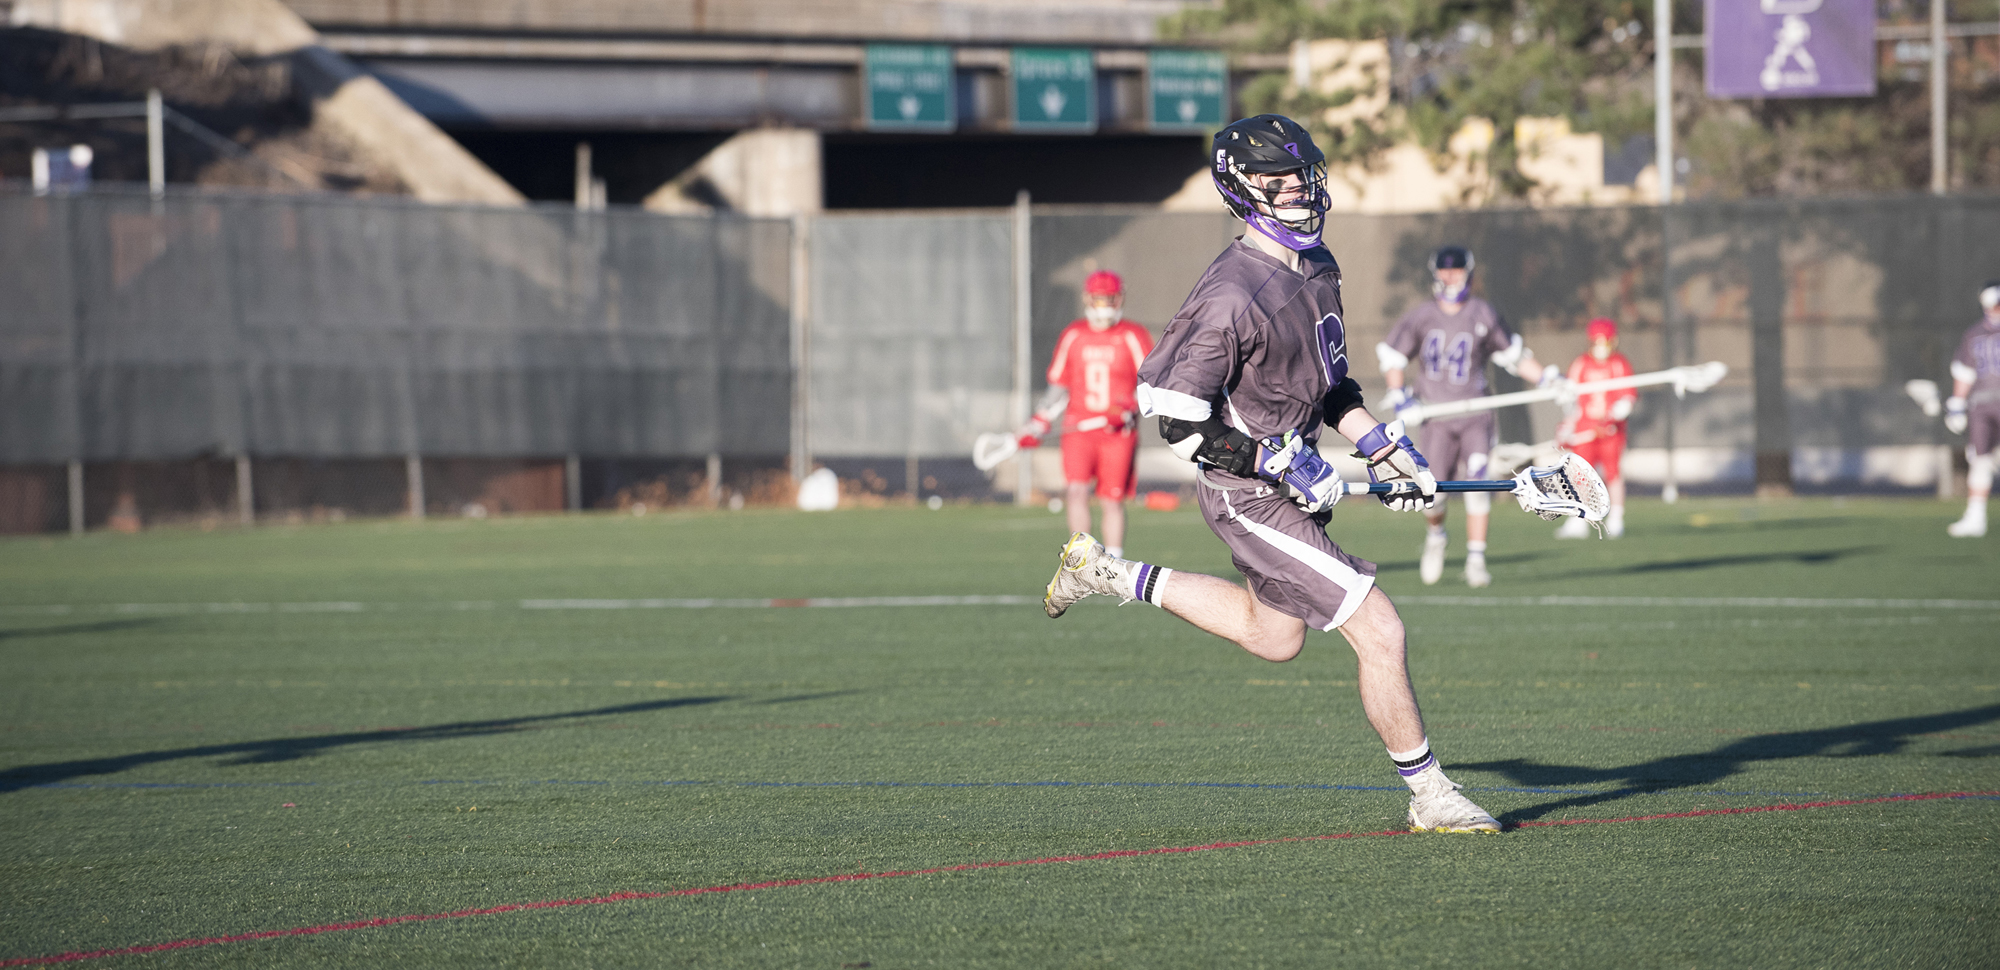 Sophomore attackman Connor Kirkwood had a career-high seven goals in the win over Catholic on Thursday.